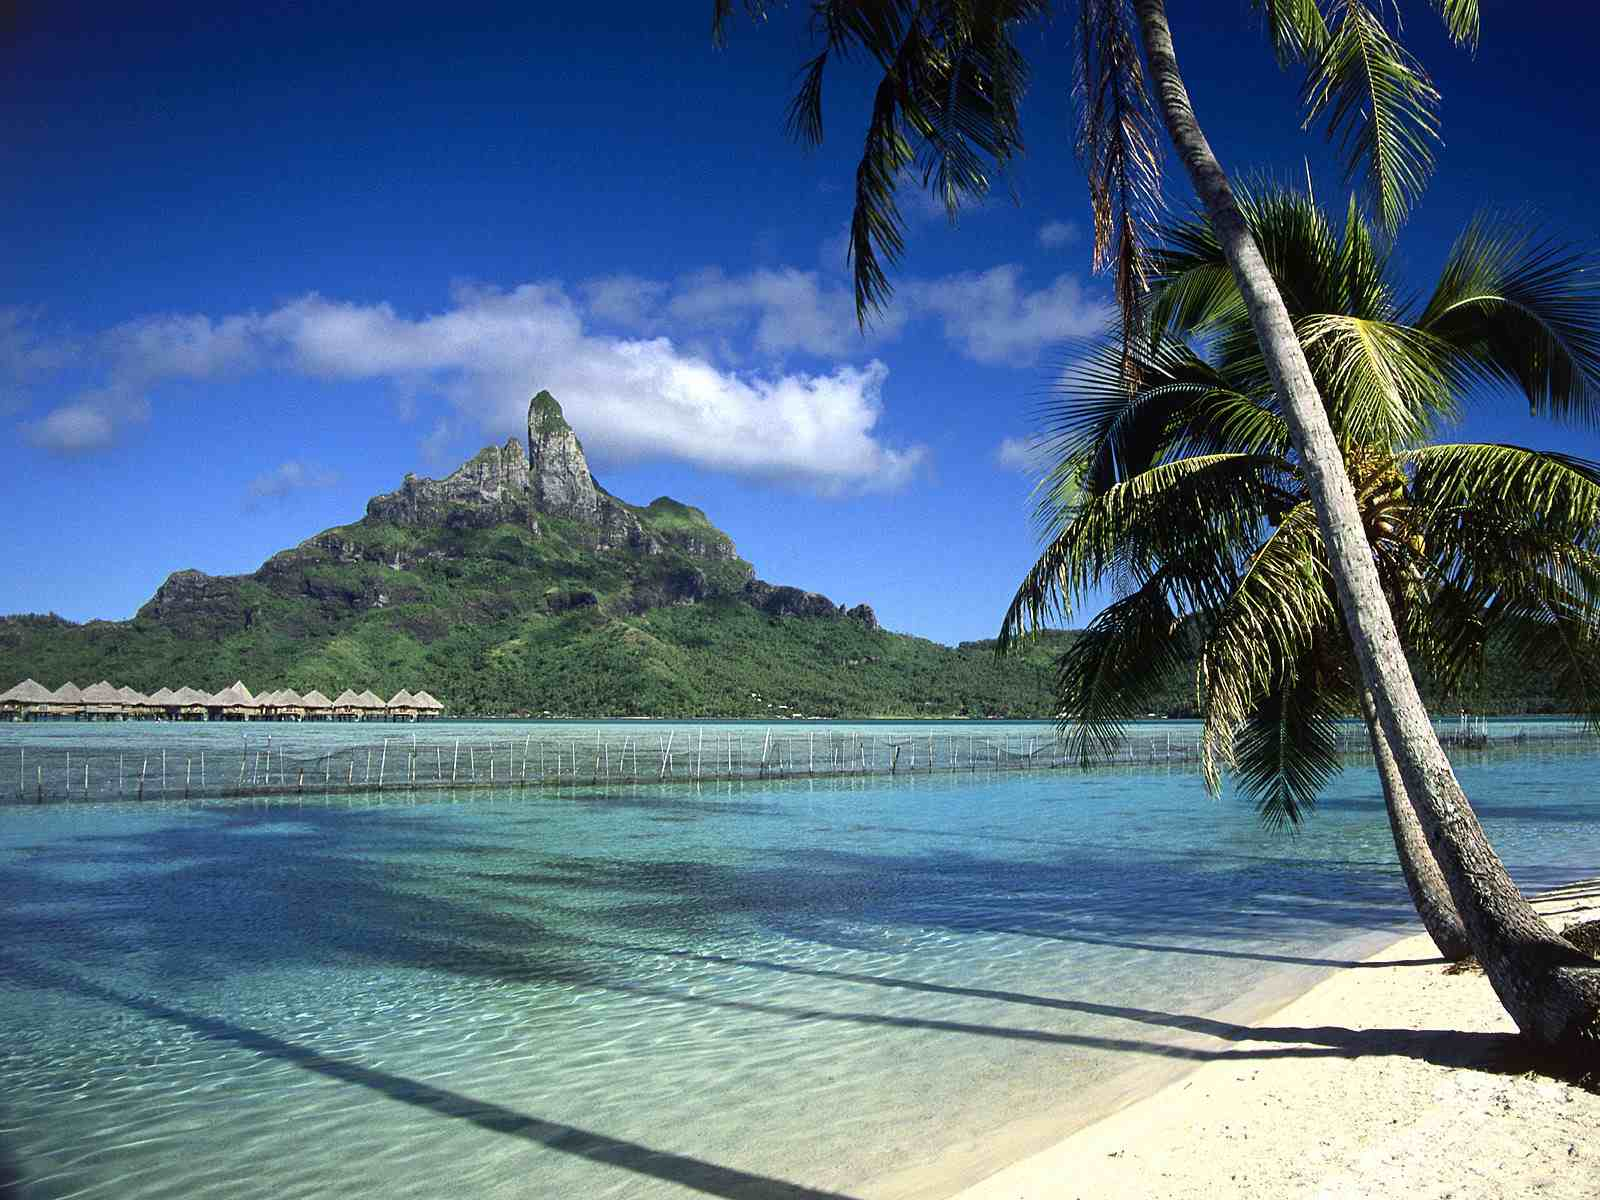 A Beach Scene In Bora